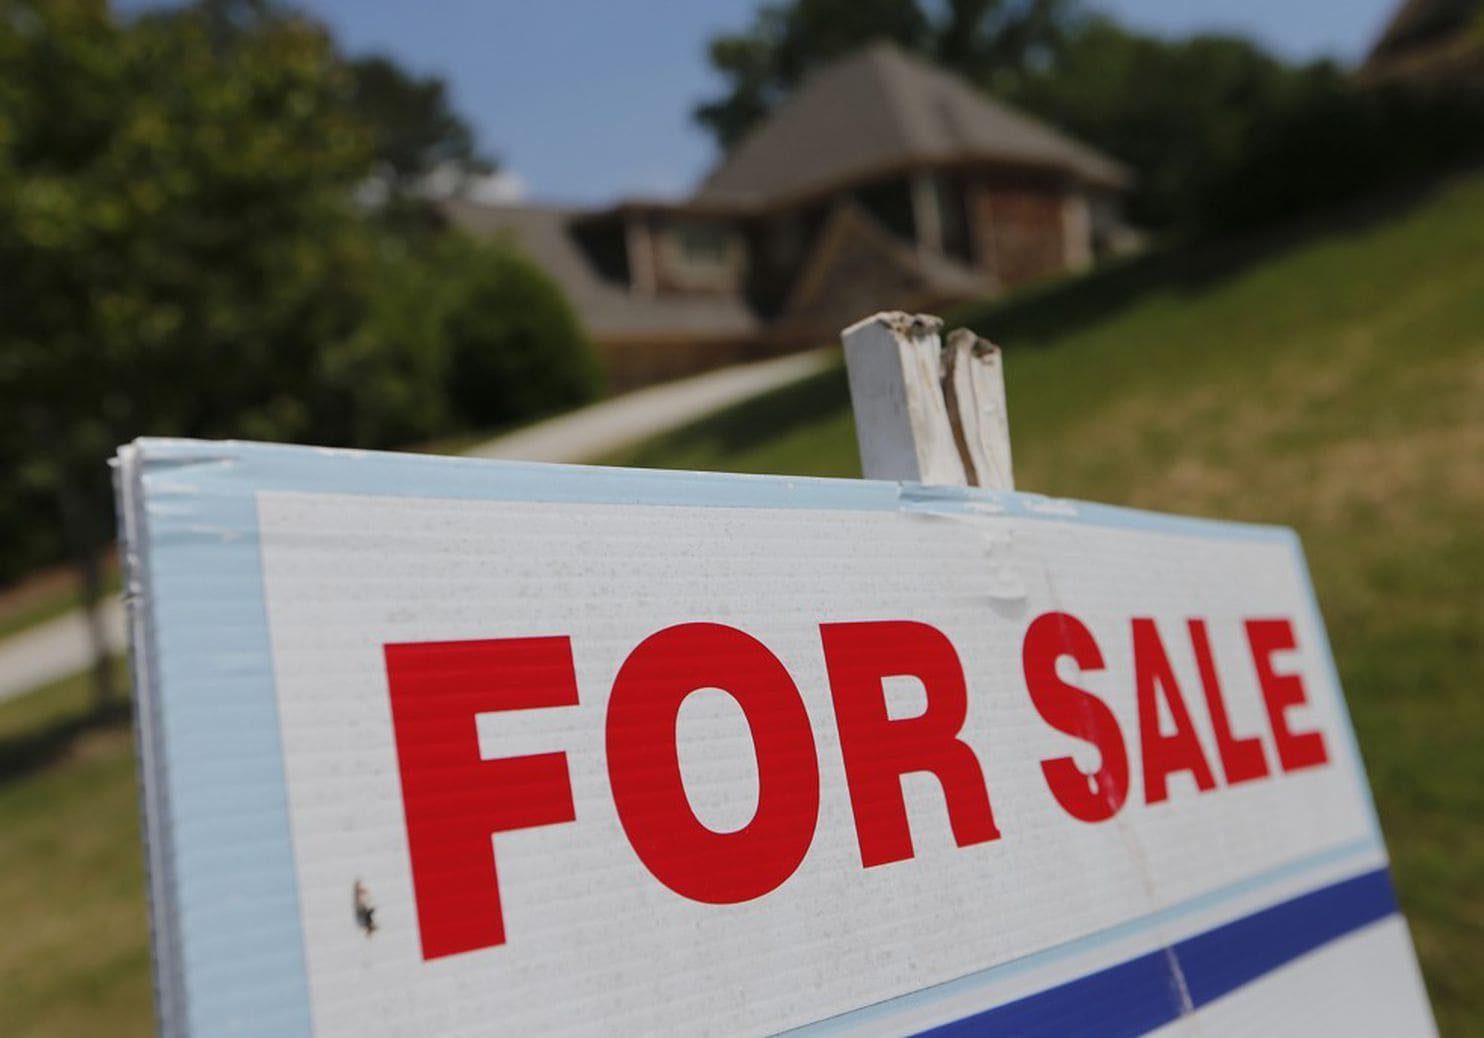 Terminating A Contract With Your Real Estate Agent In Maryland Can Cost You  Big Bucks If You're Not Cautious - The Washington Post